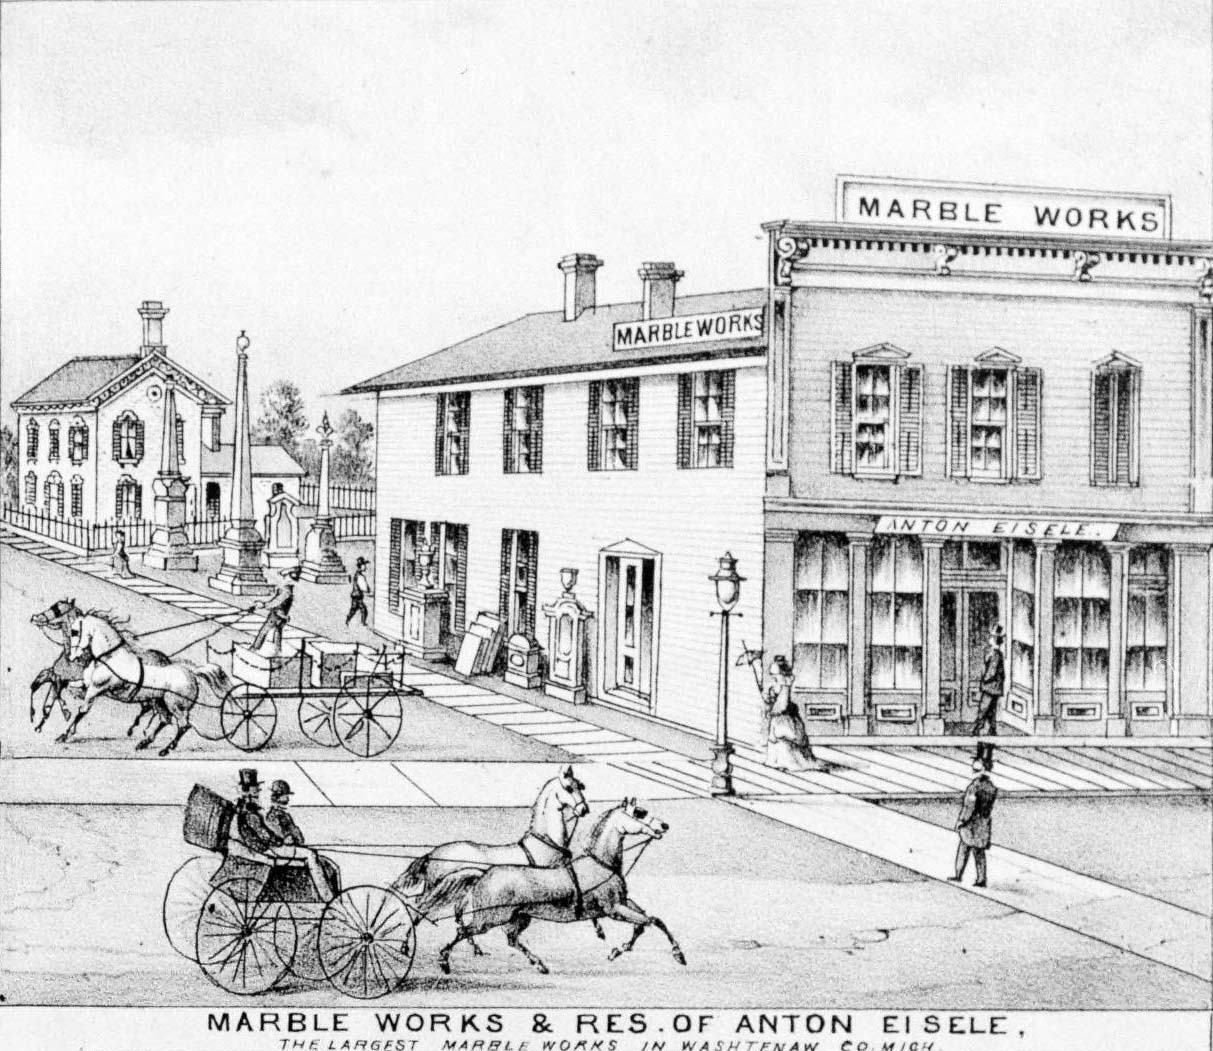 Anton Eisele House and Marble Works, 1869 image